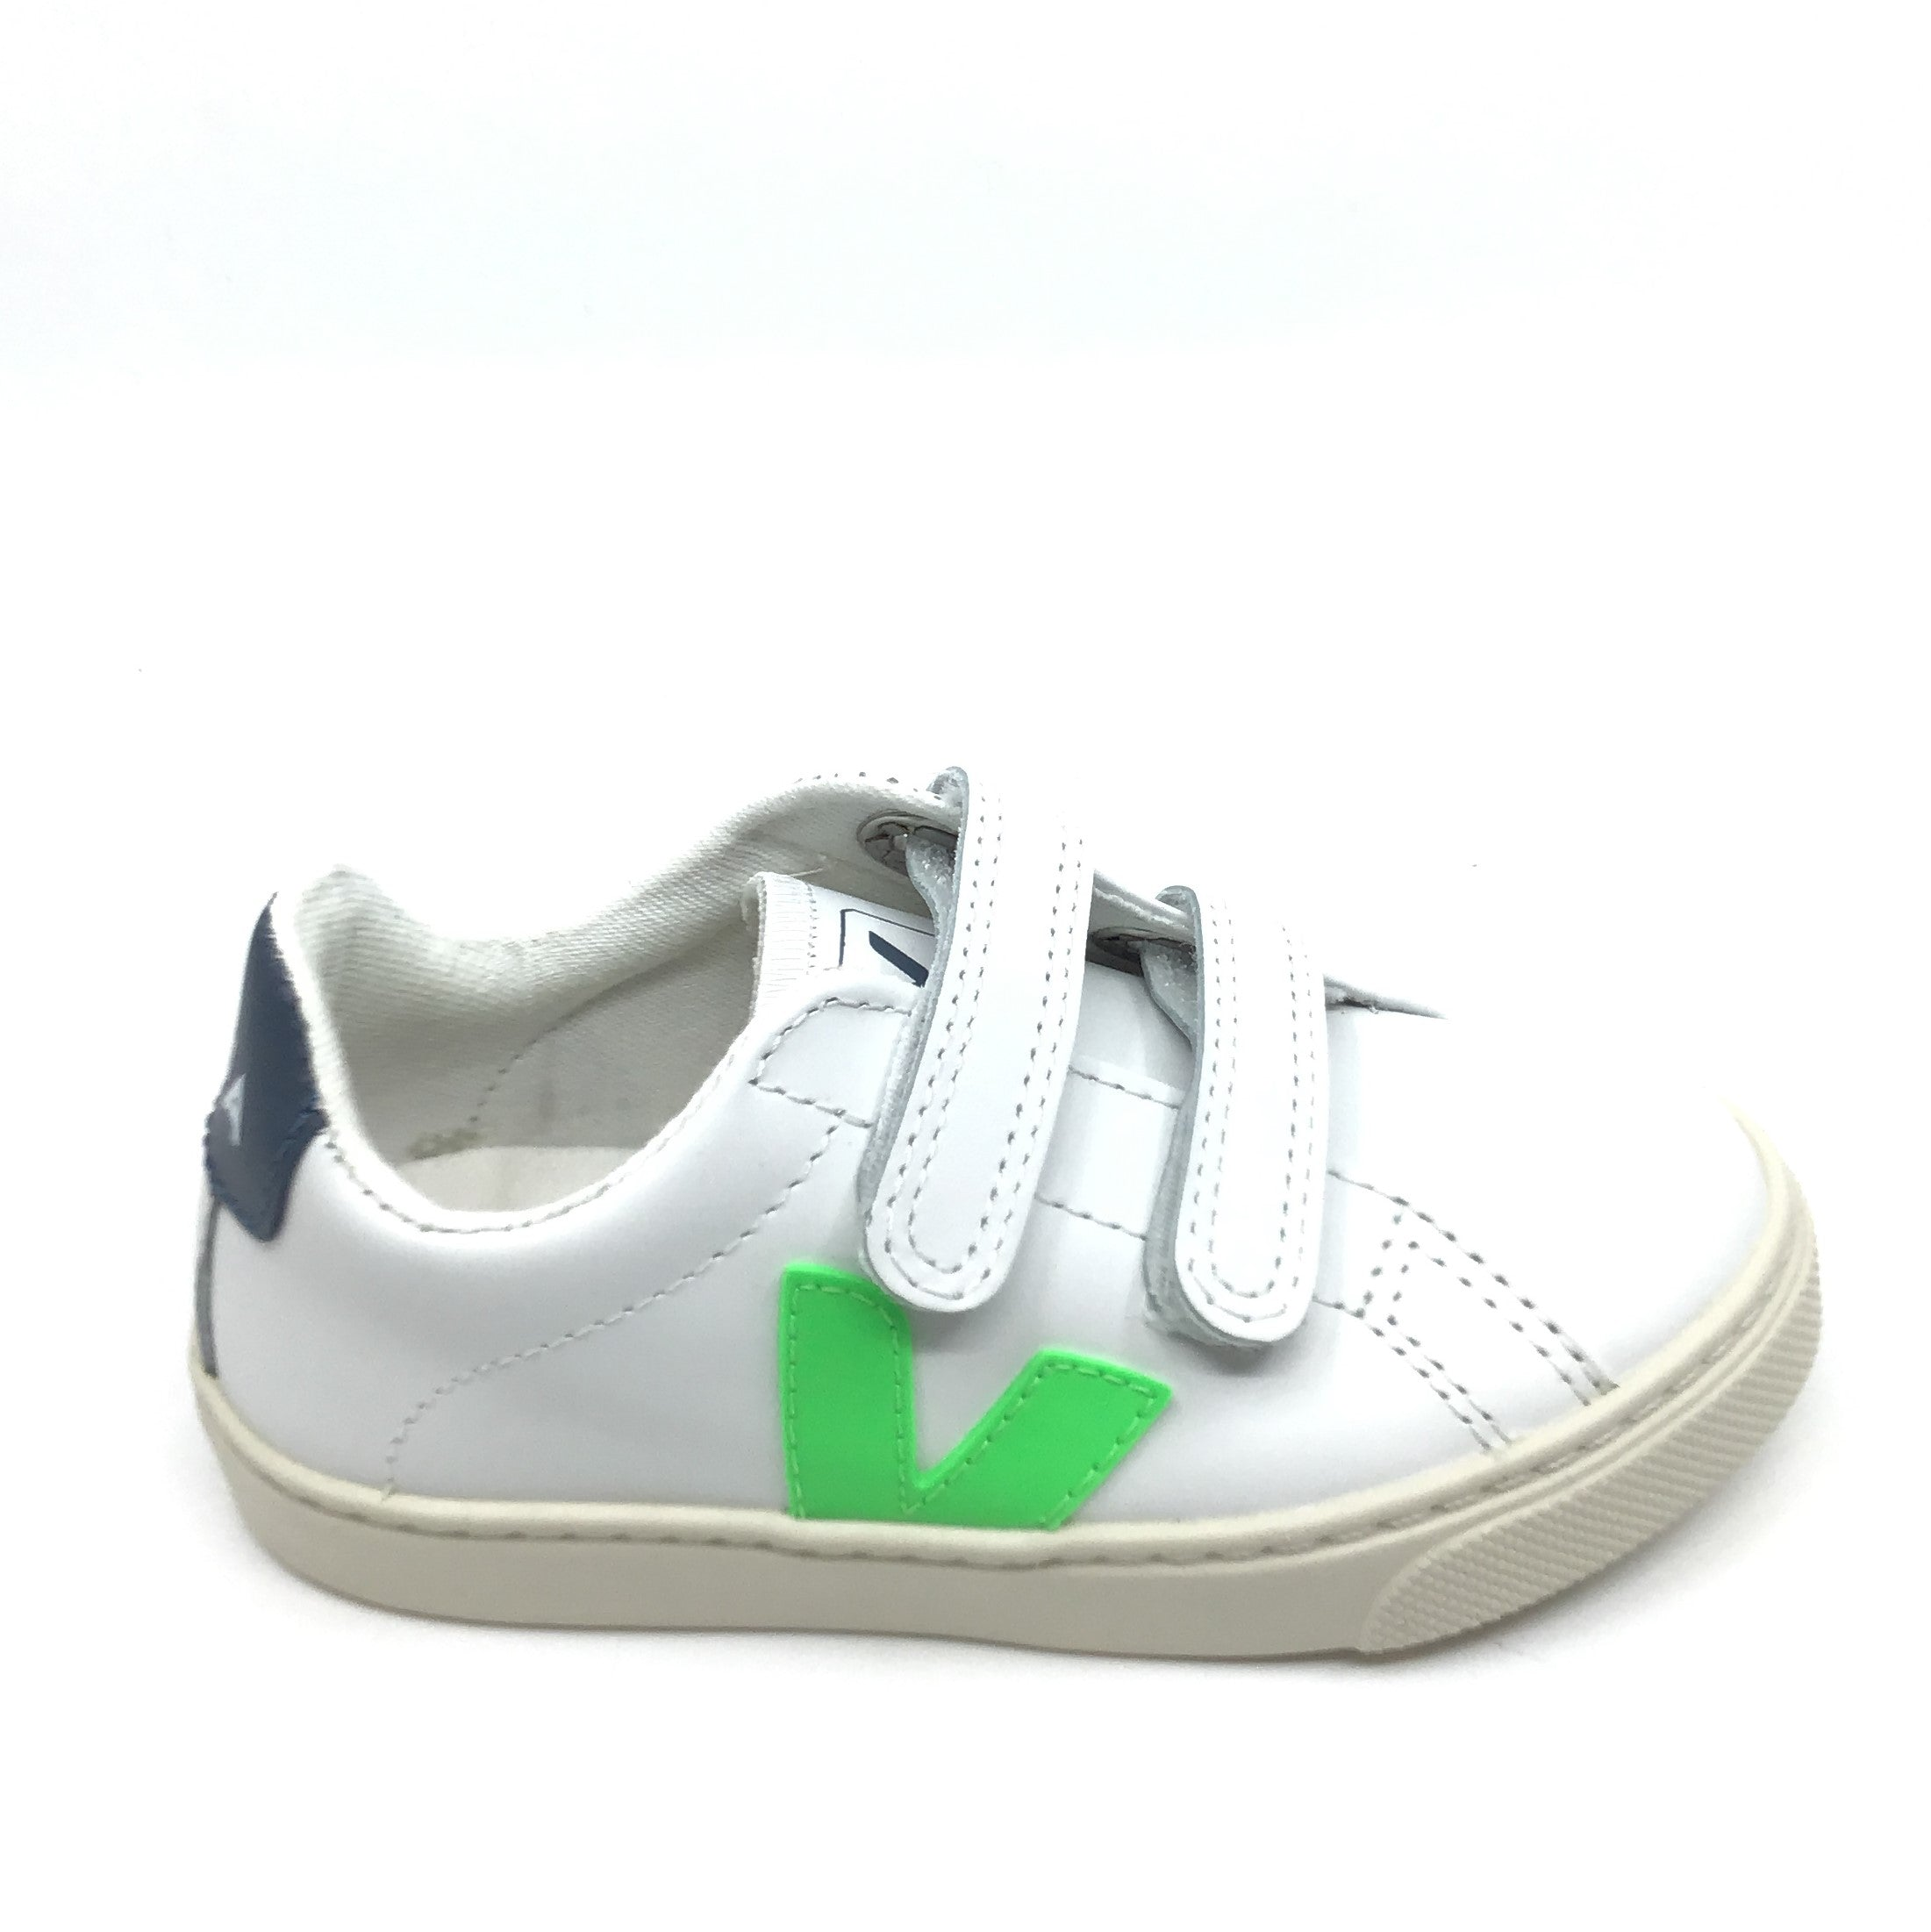 Veja White Sneaker with Neon Green V